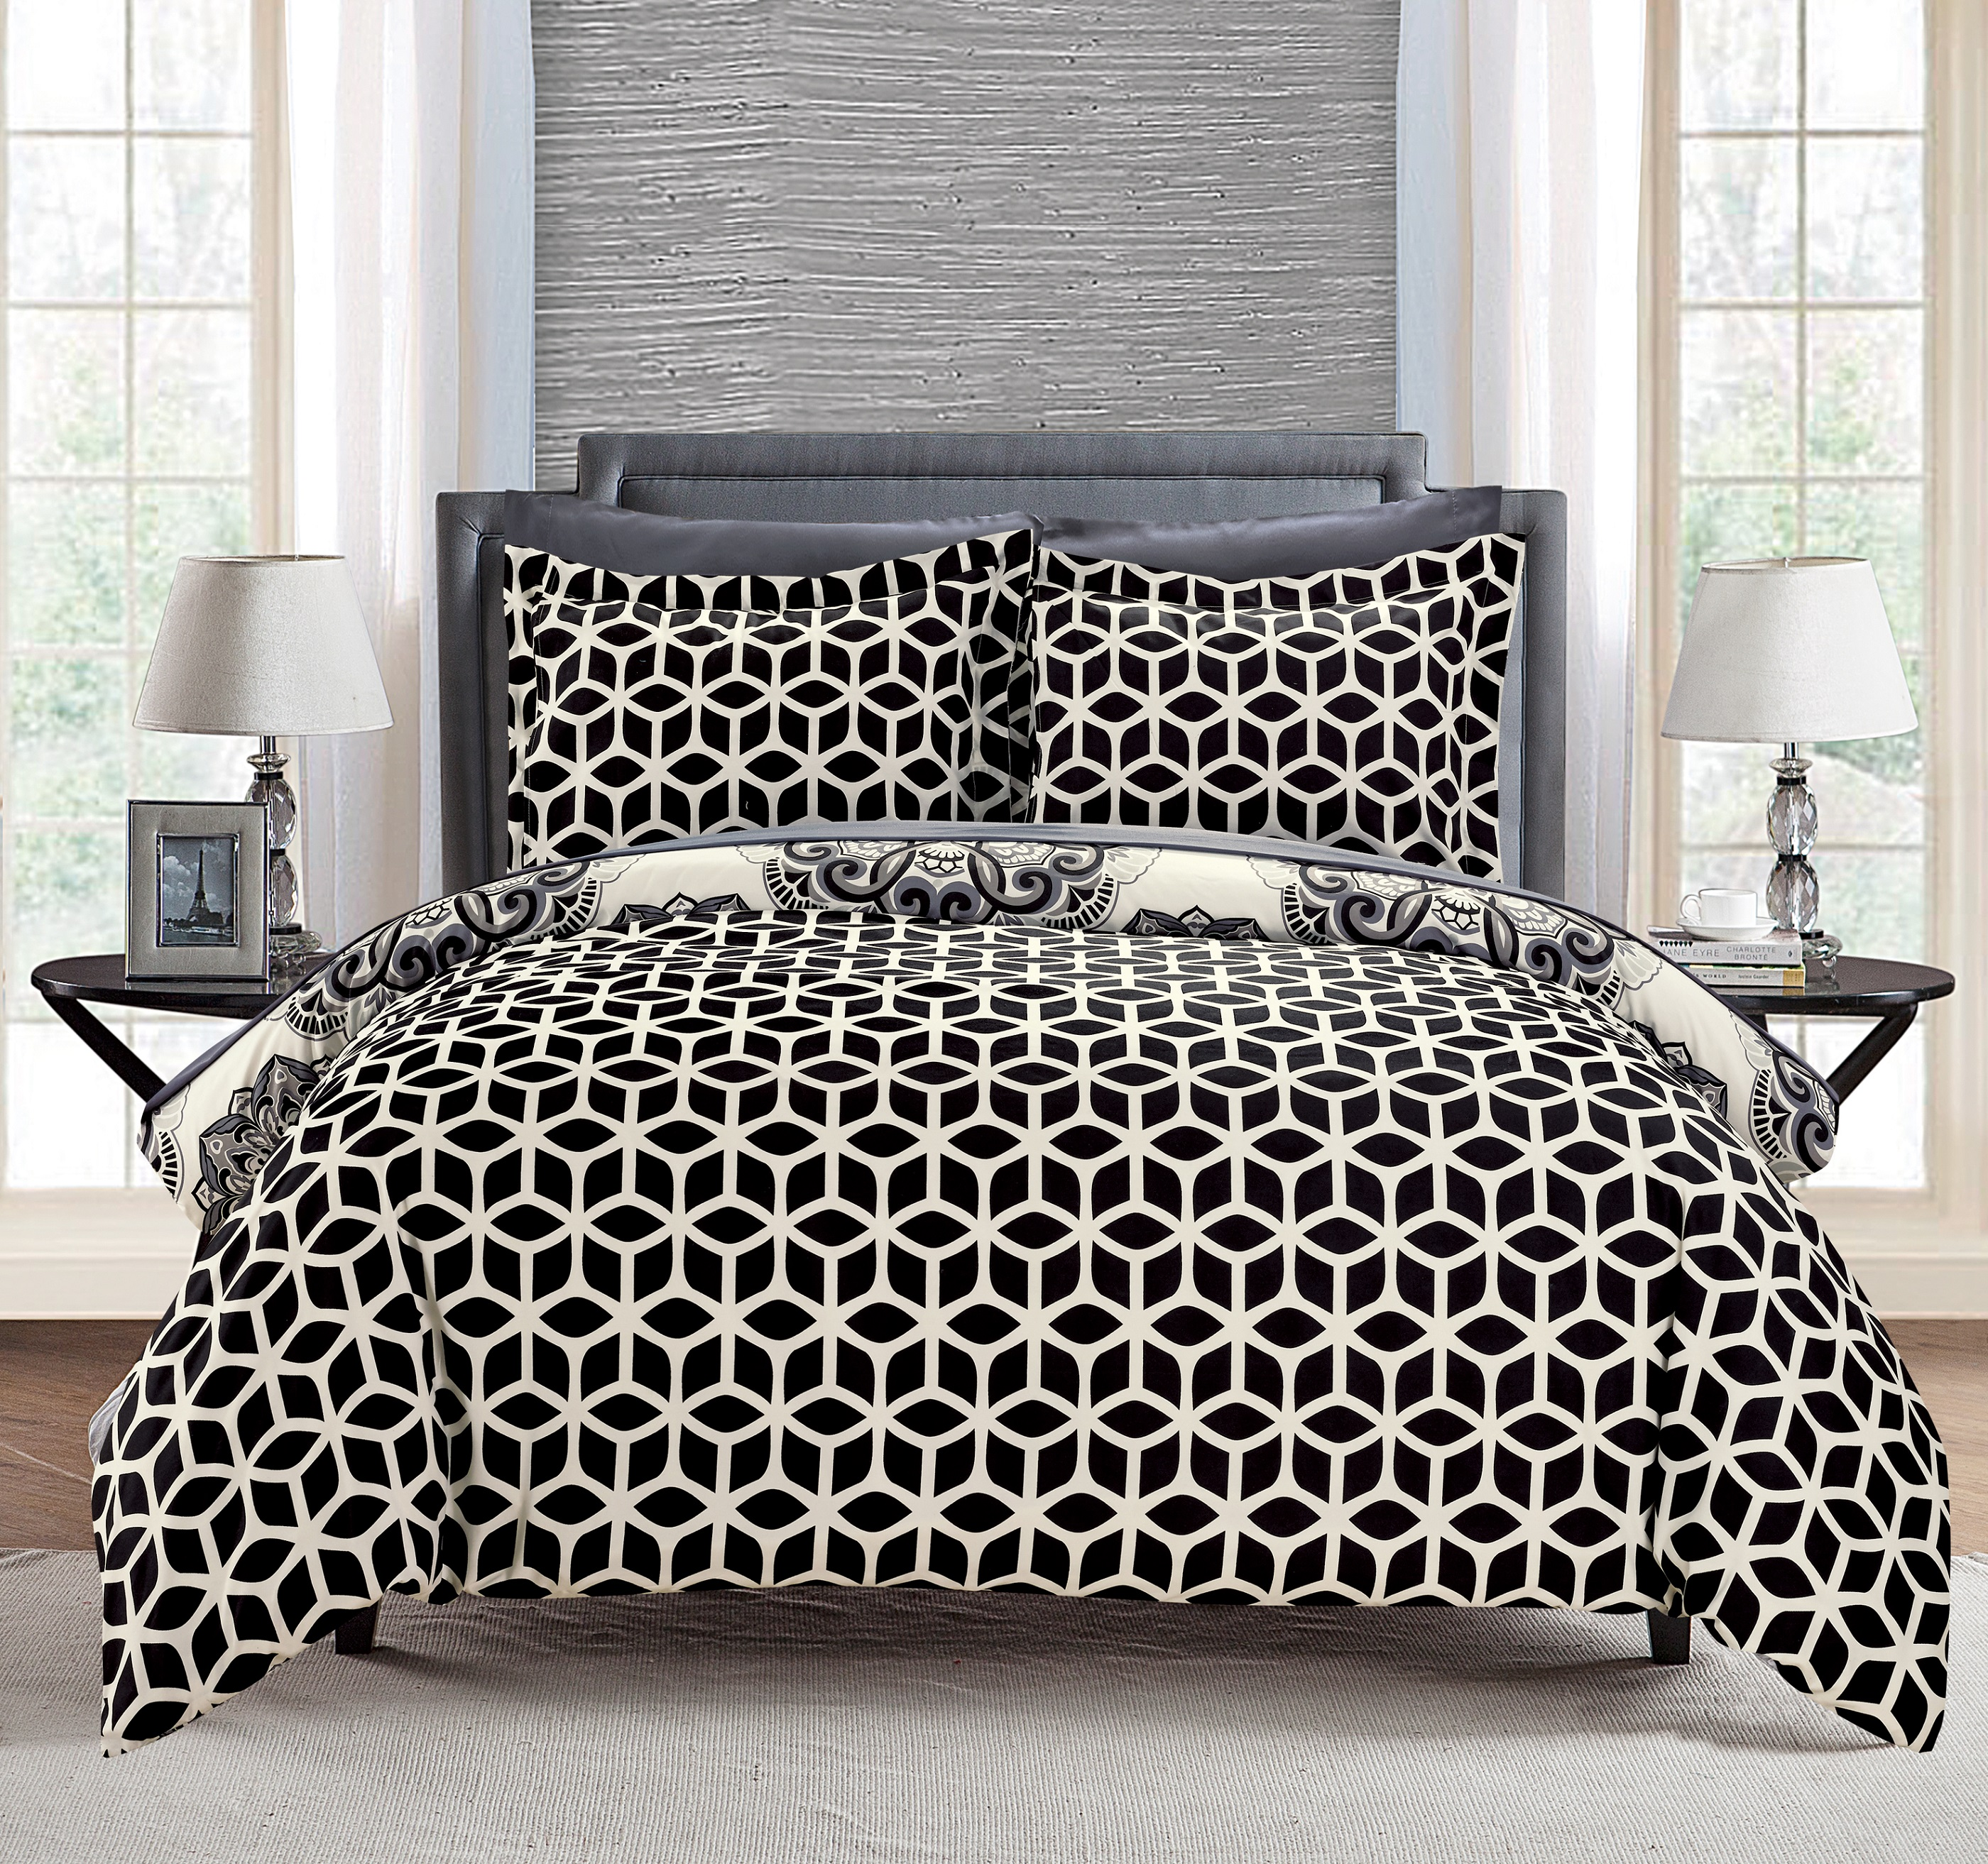 Chic Home 3-Piece Aragona Super soft microfiber Large Printed Medallion REVERSIBLE with Geometric Printed Backing Full/Queen Duvet Cover Set Navy